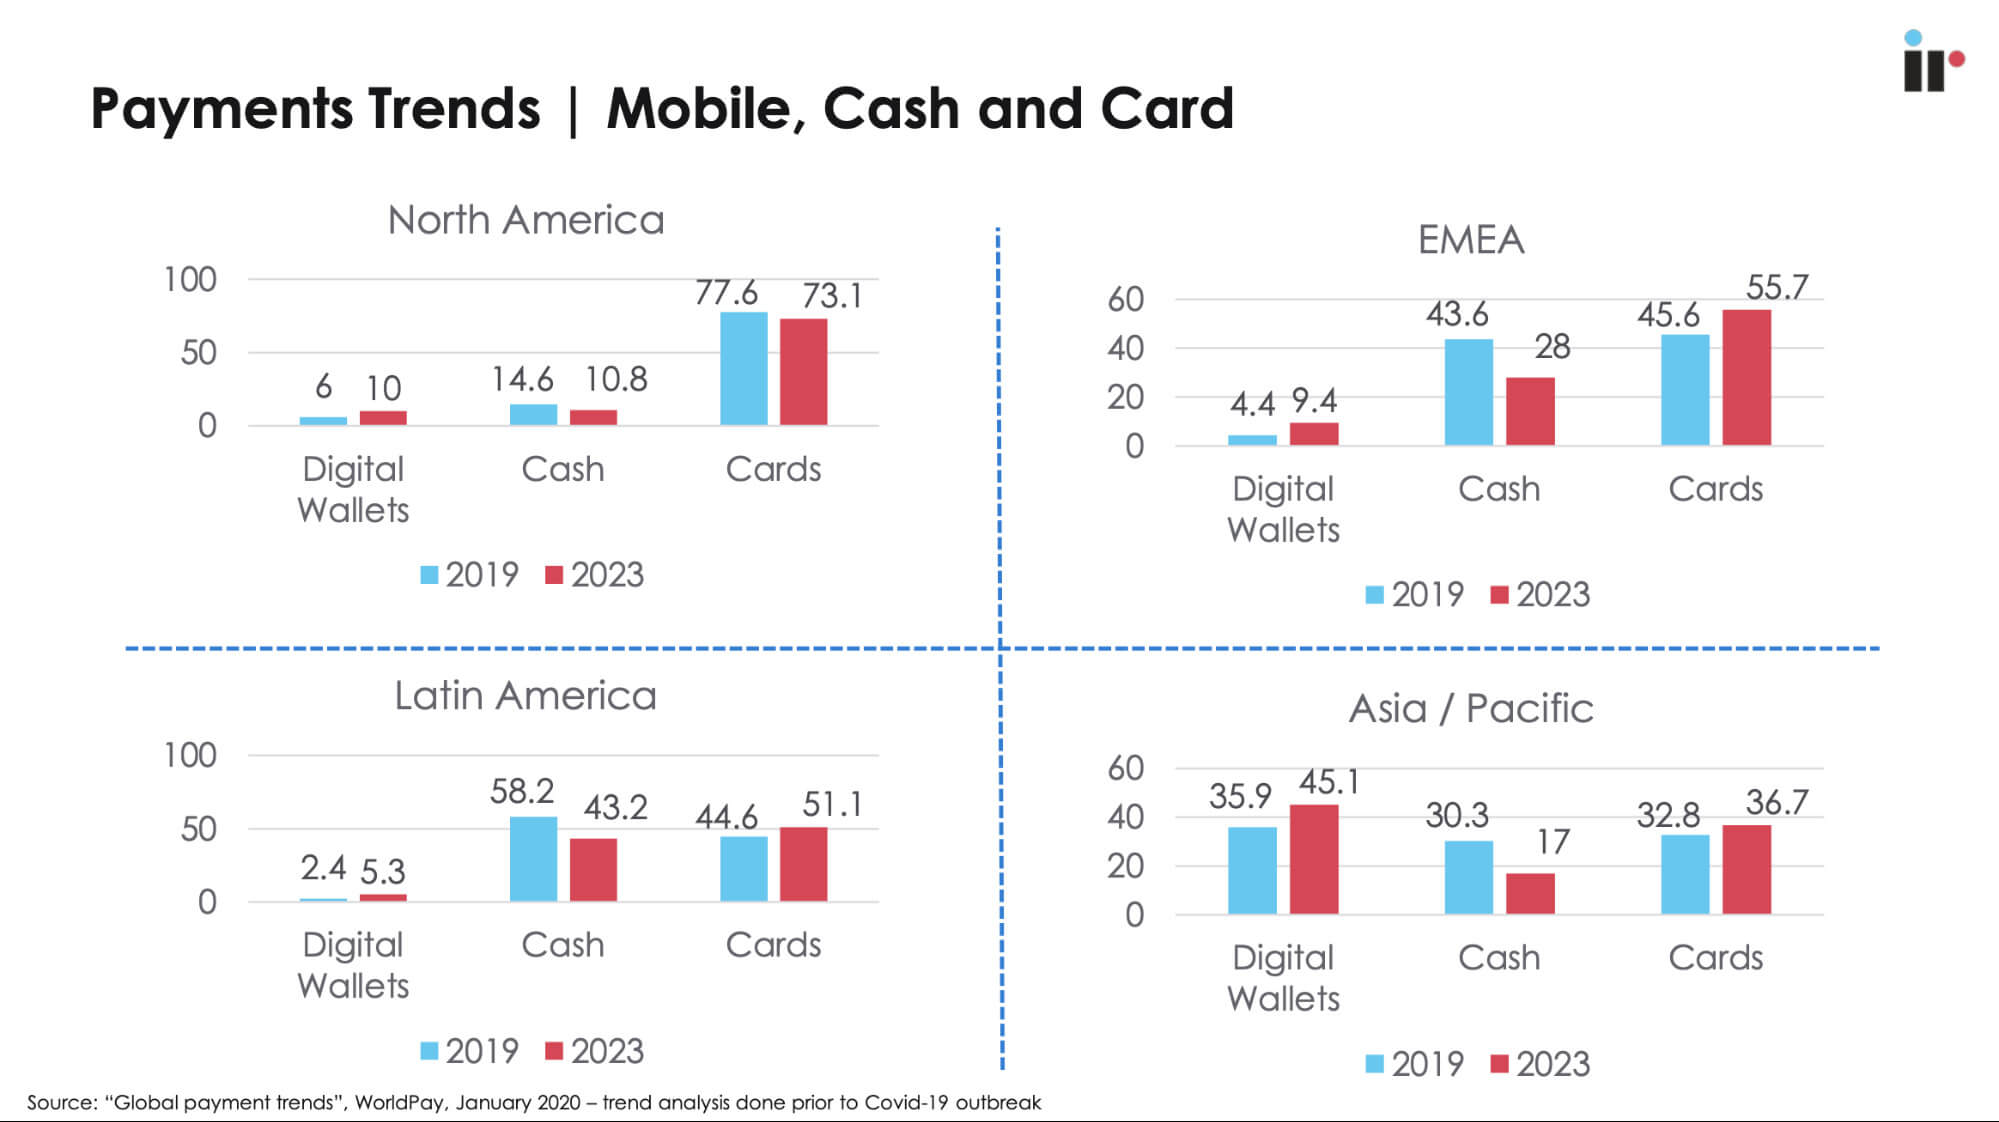 Payments Trends - Mobile, Cash and Card